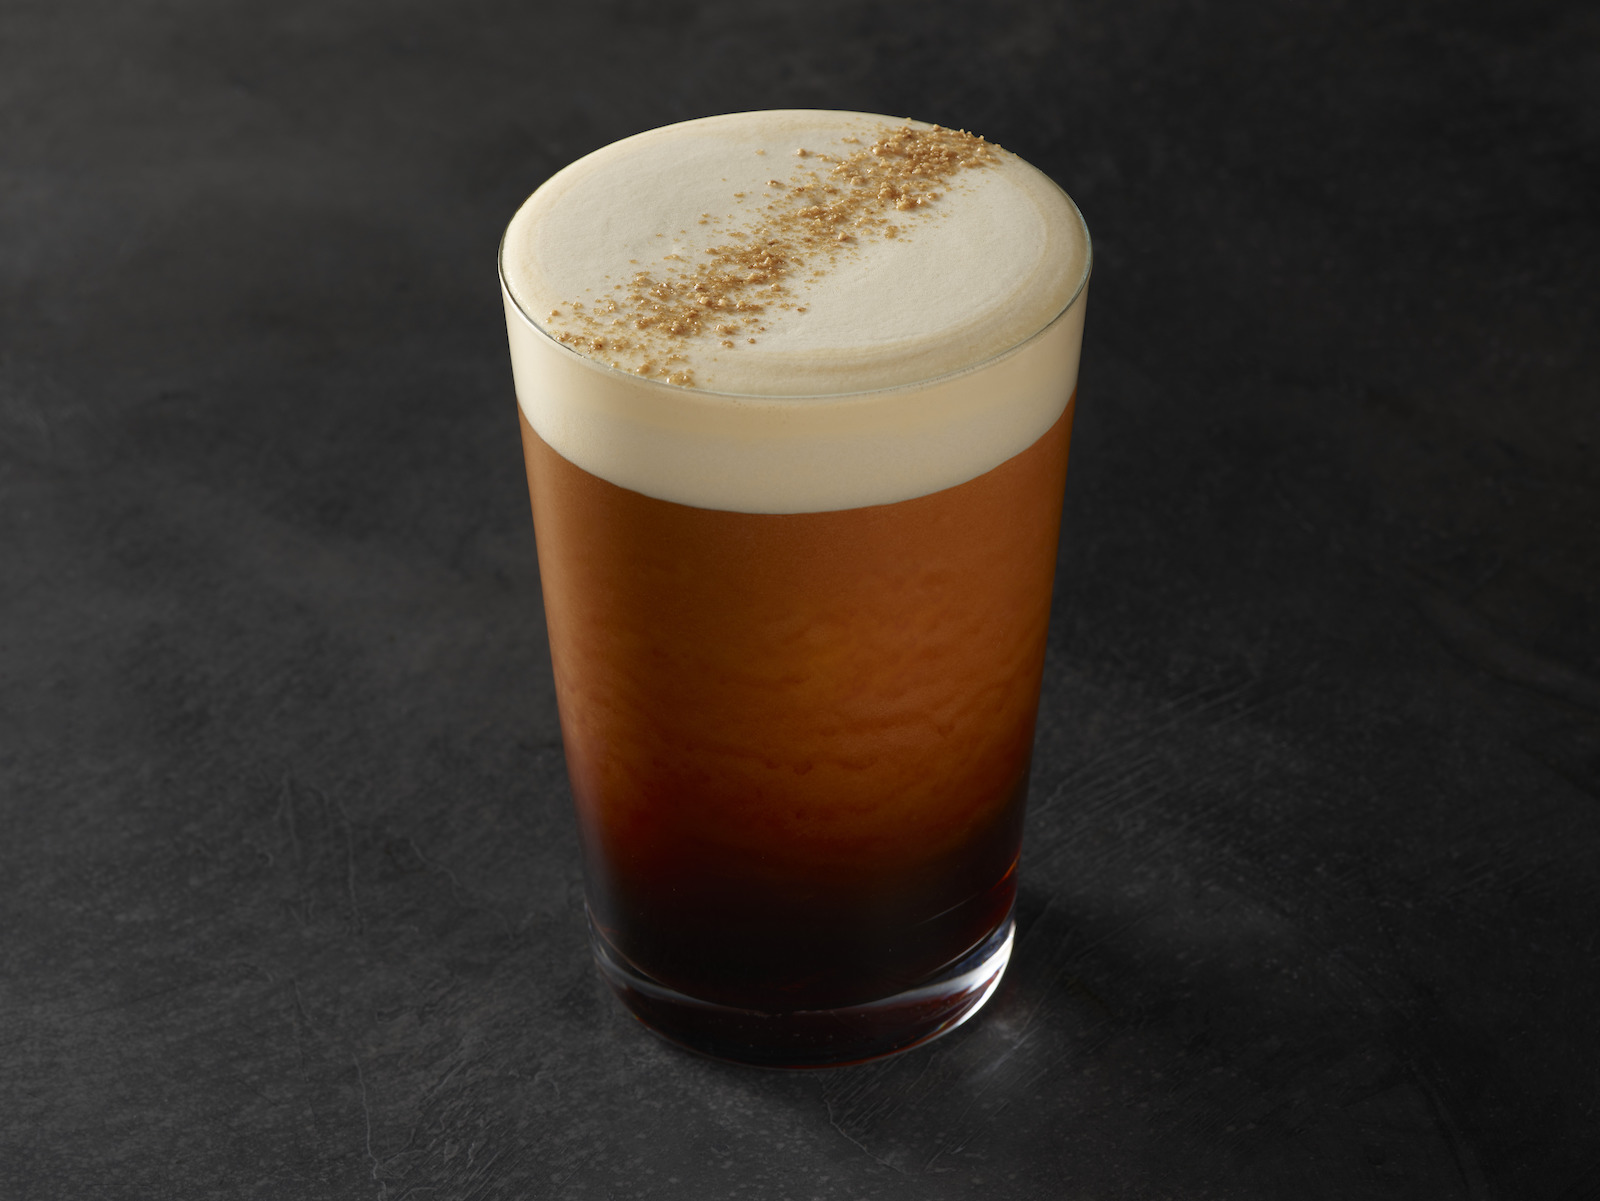 starbucks-cold-foam-nitro-FT-BLOG0418.jpg